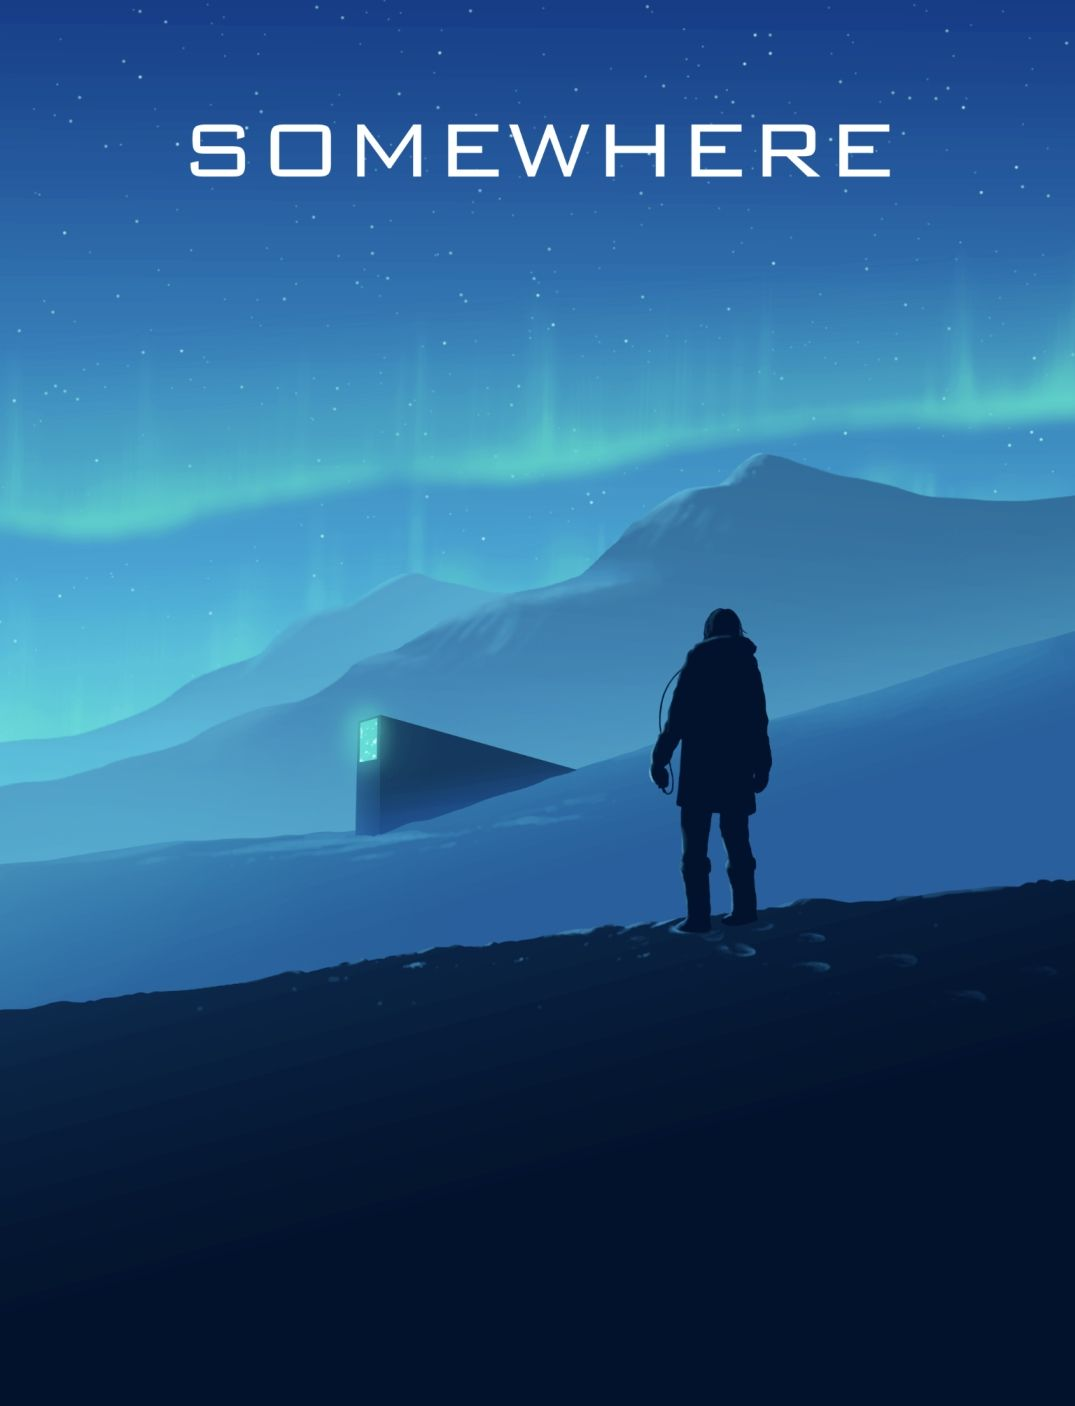 Somewhere : The Vault Papers (copie d'écran 1 sur iPhone / iPad)